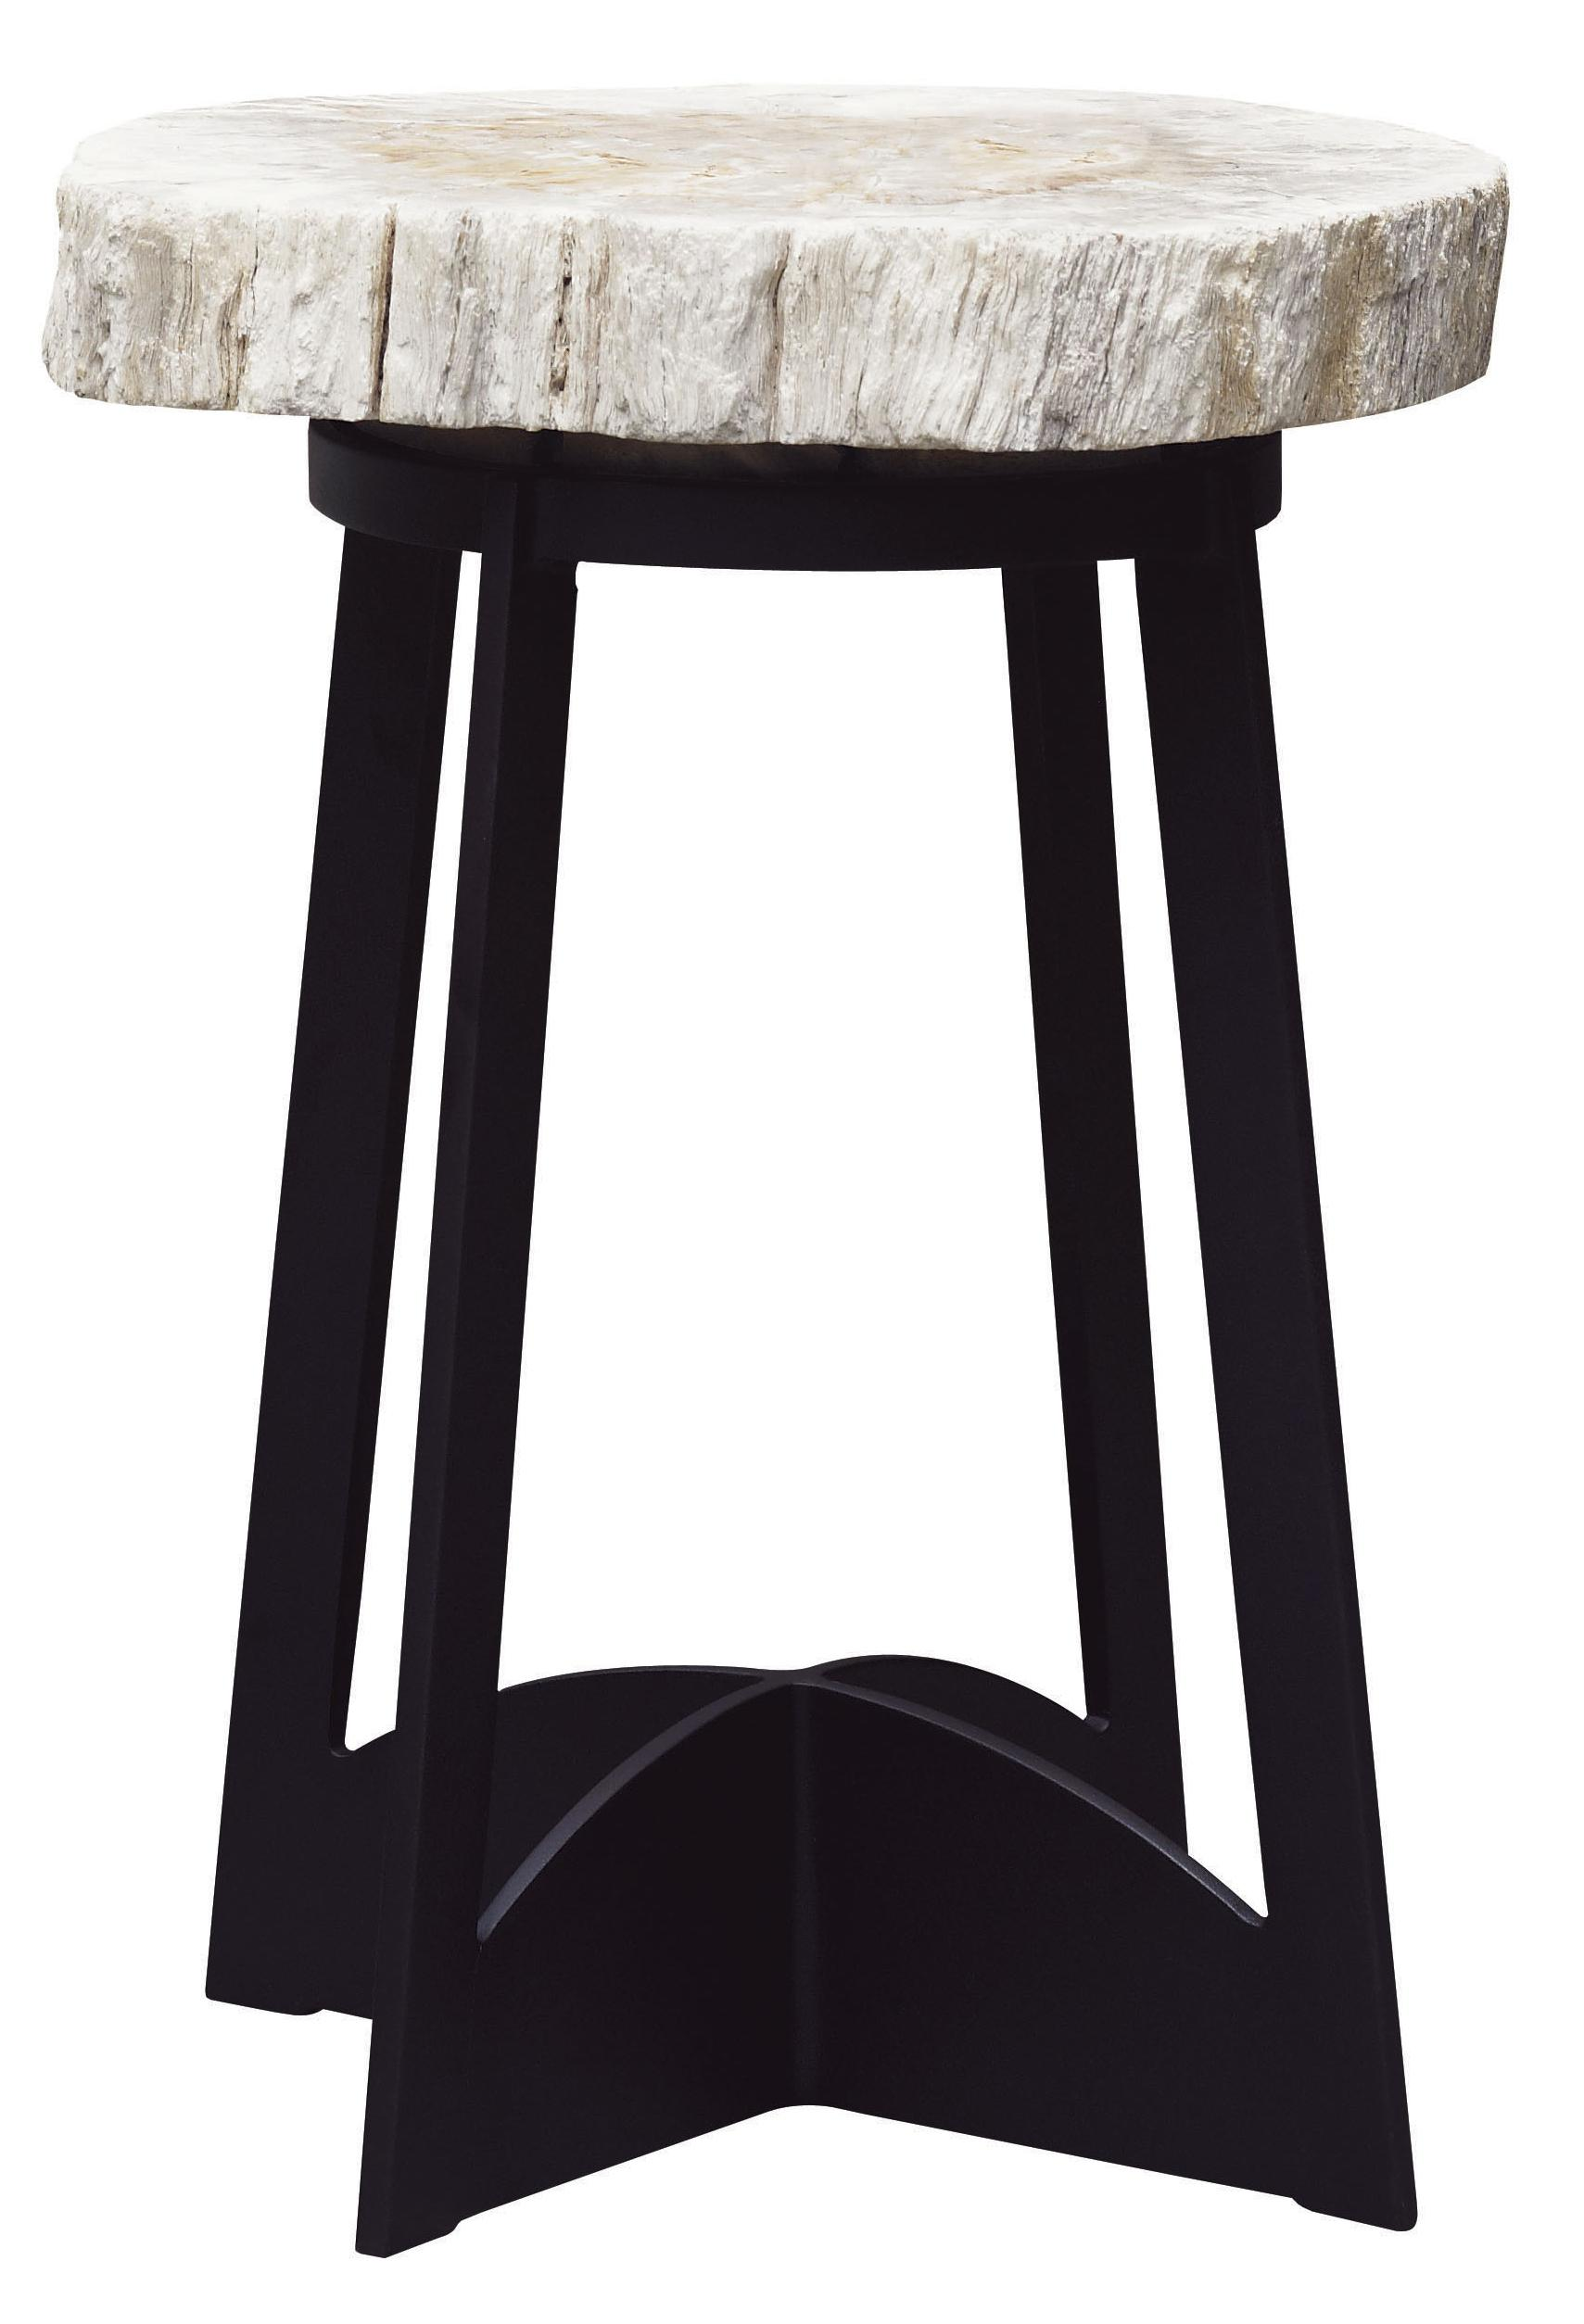 Tommy Bahama Outdoor Living Alfresco Living Petrified Wood End Table - Item Number: 3100-203ST+TB